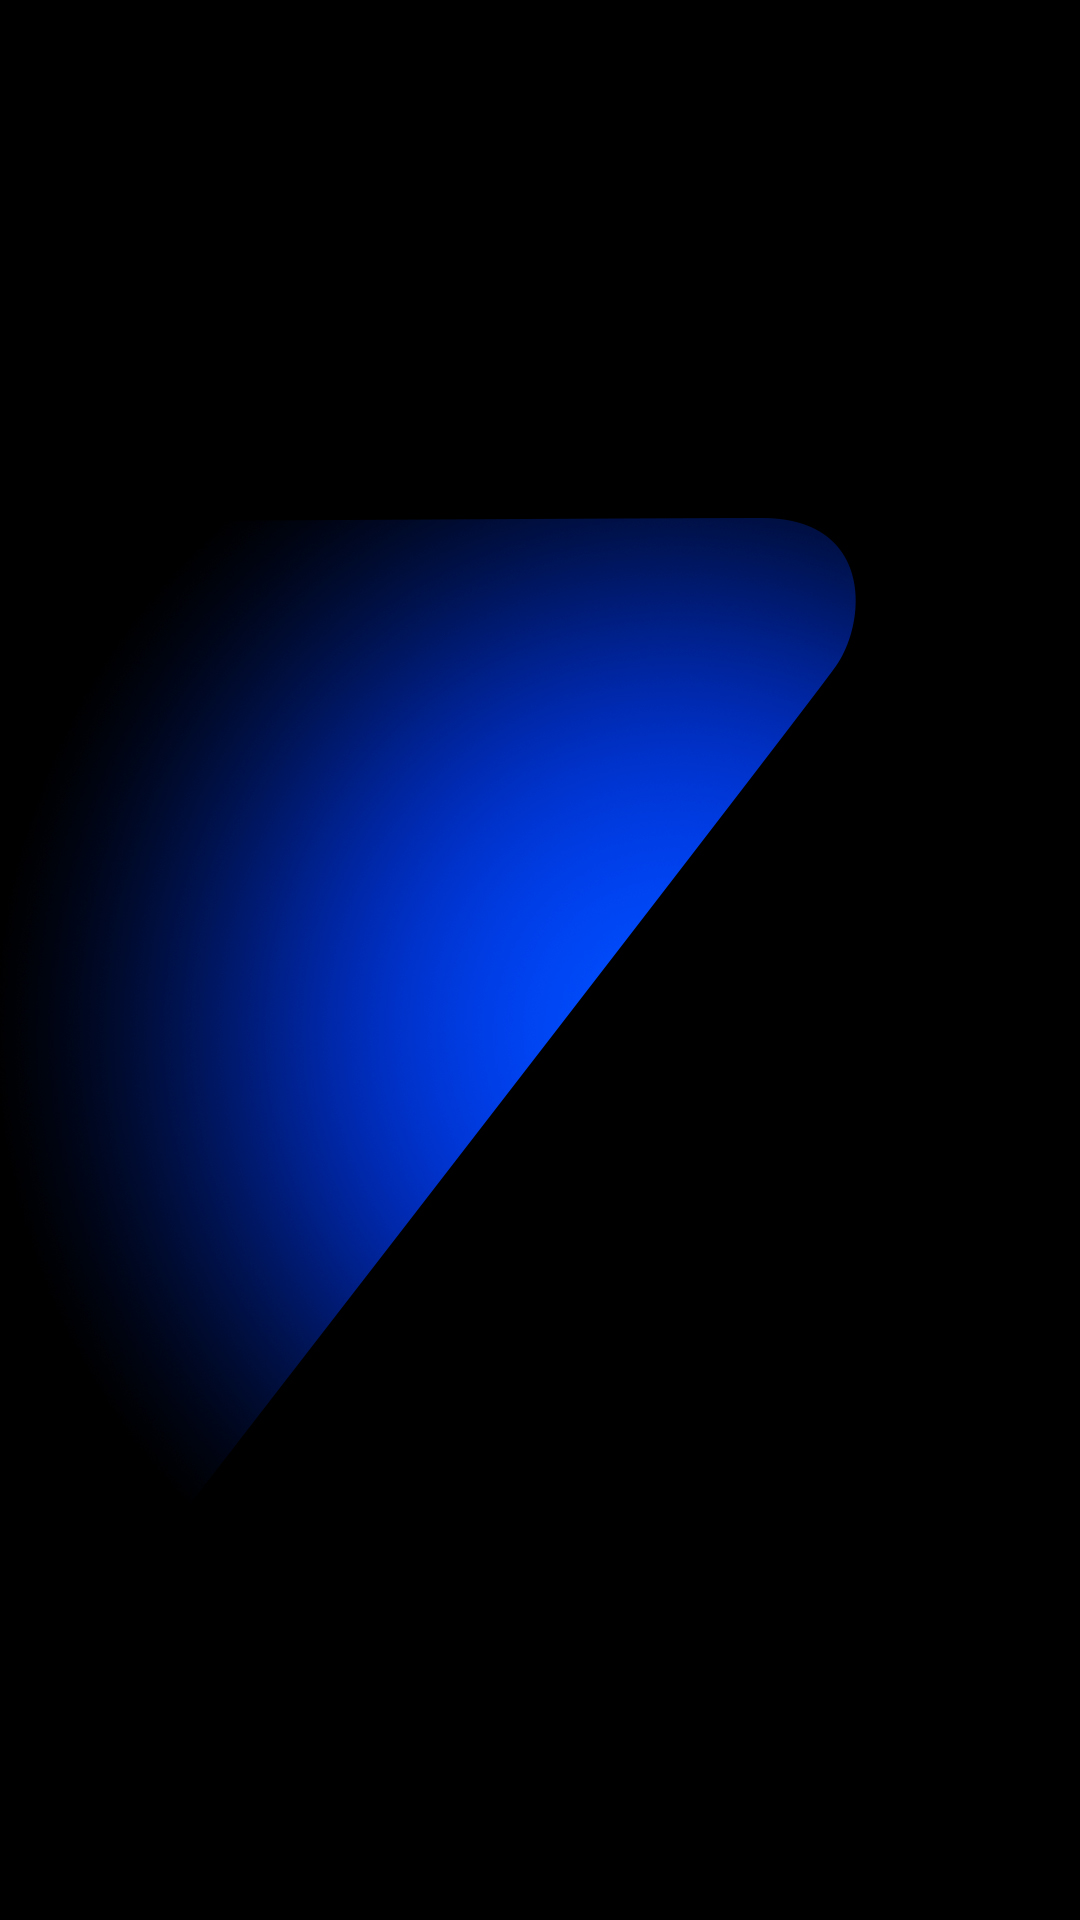 Samsung Galaxy S7 Edge lock screen wallpaper Design 1080x1920